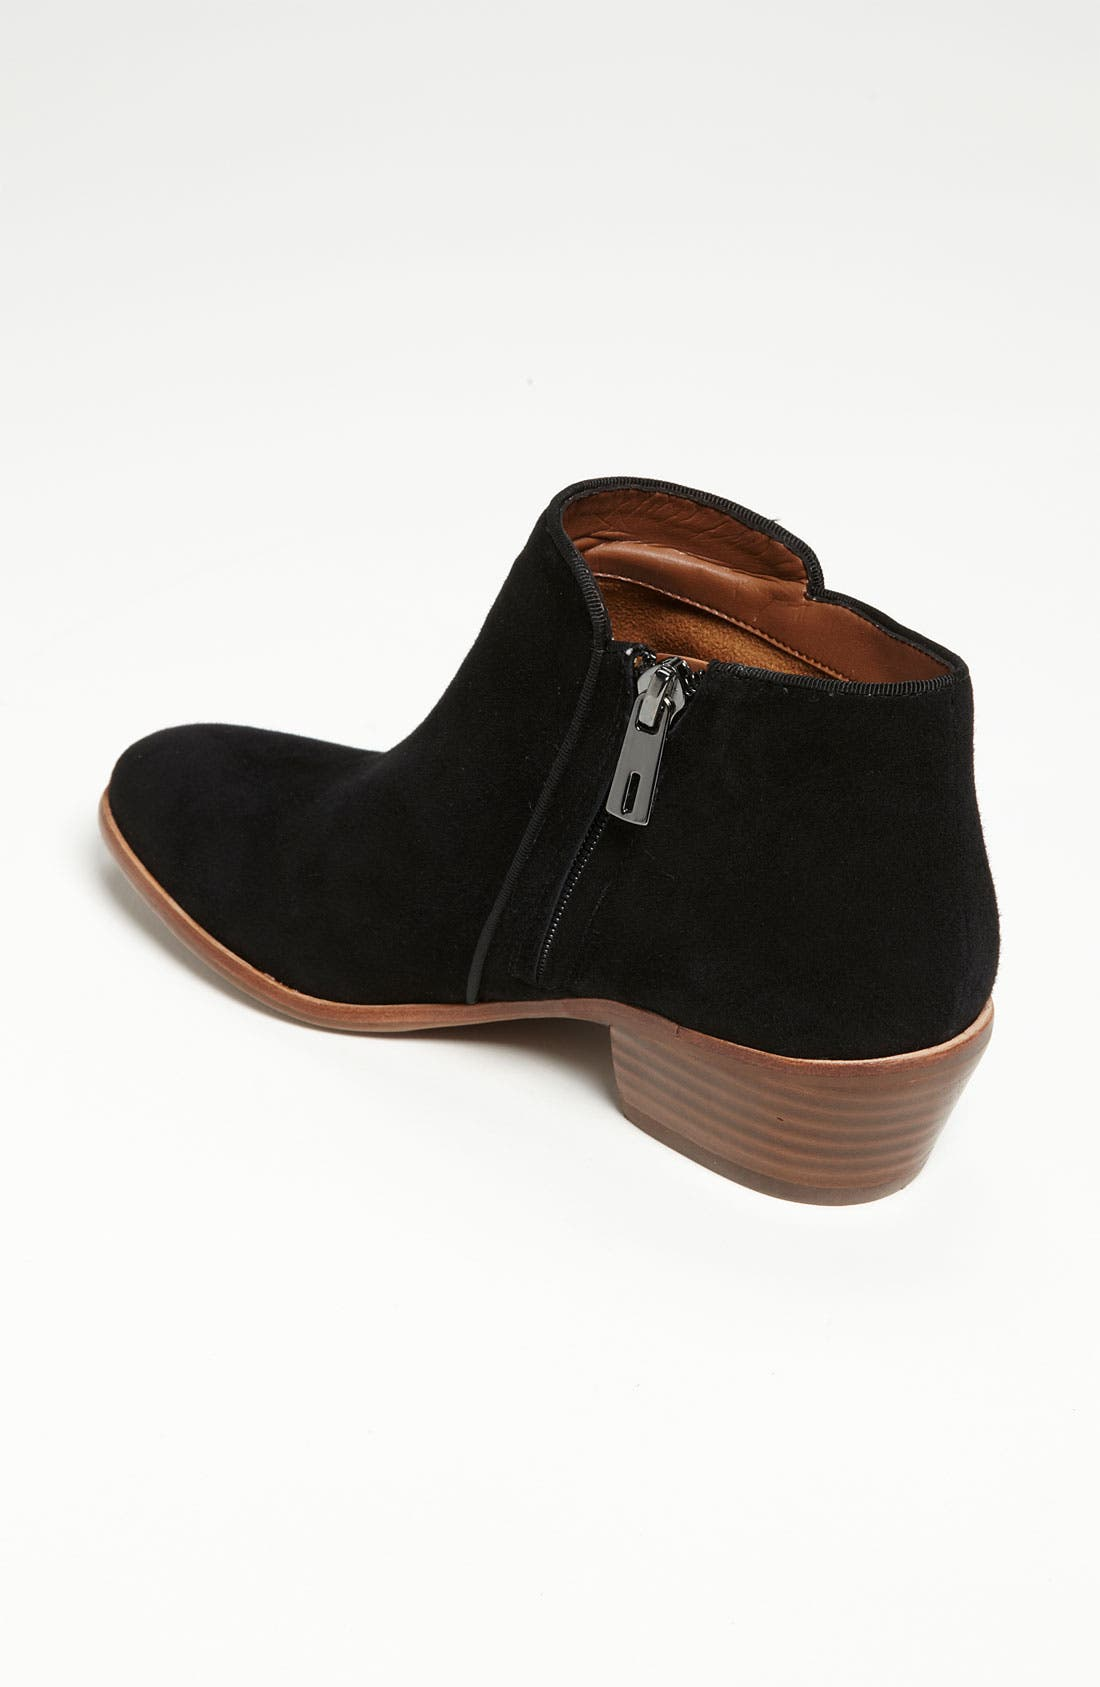 'Petty' Chelsea Boot,                             Alternate thumbnail 6, color,                             BLACK SUEDE